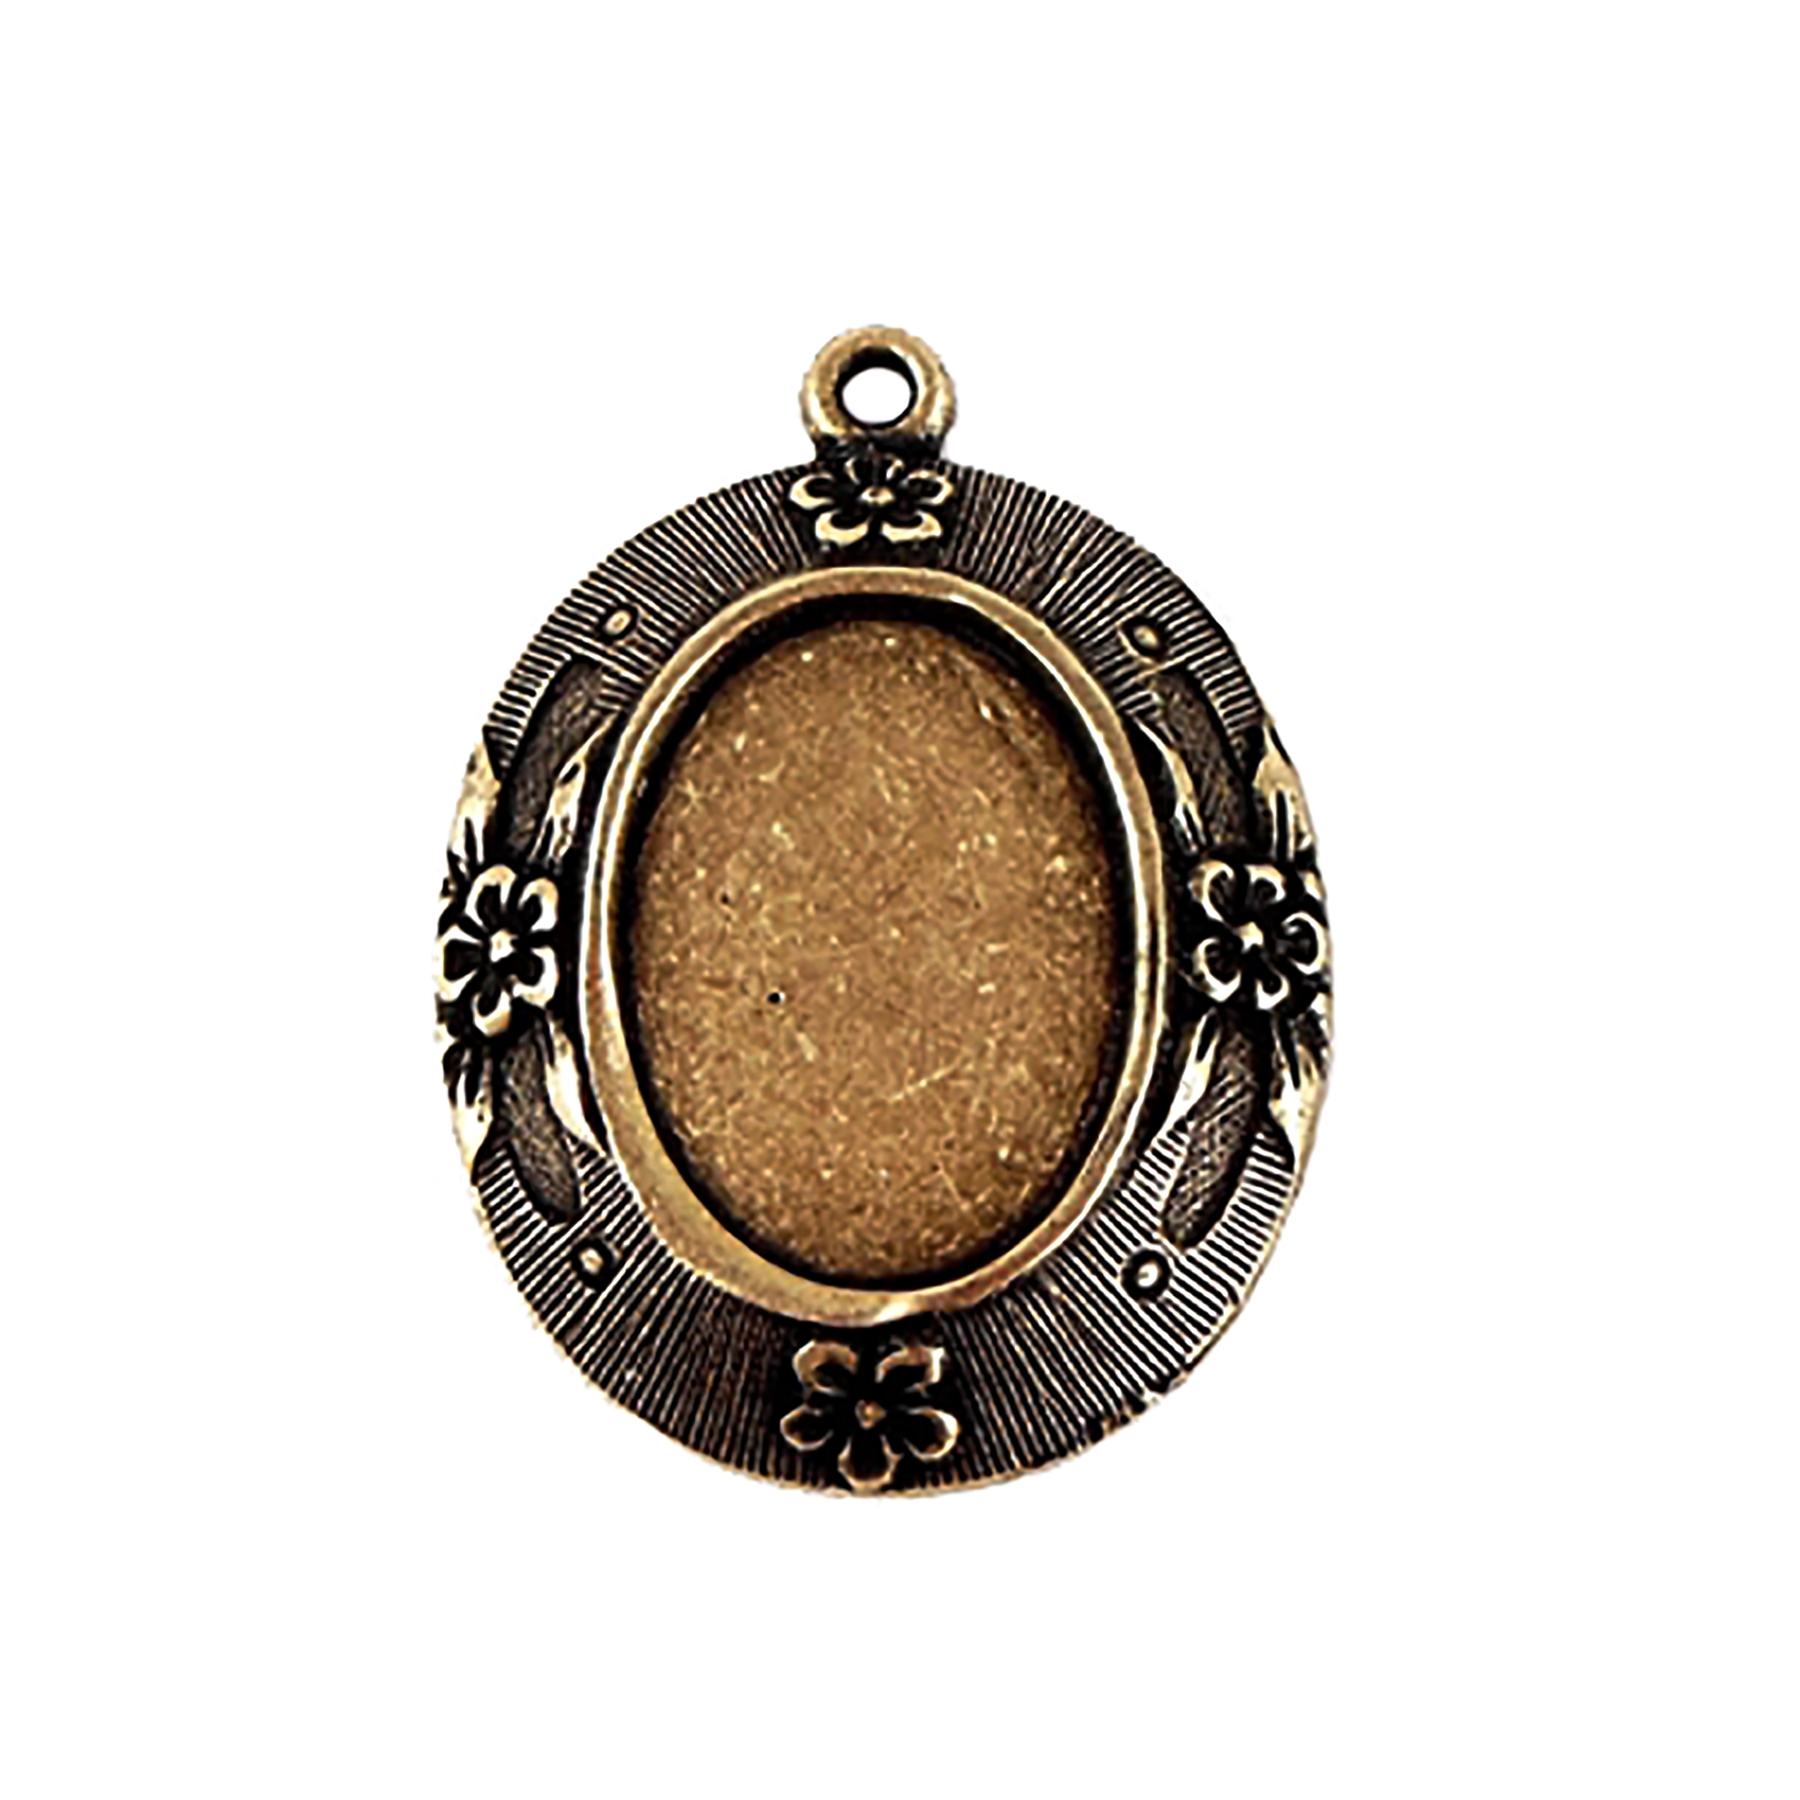 floral pendant mount, brass ox, 18 x 13mm, 08273, mount, bezel, antique brass, cameo, pendant, jewelry making, jewelry supplies, B'sue Boutiques, cameo mount, brass ox pendant, pendant mount, floral mount, brass, vintage supplies,